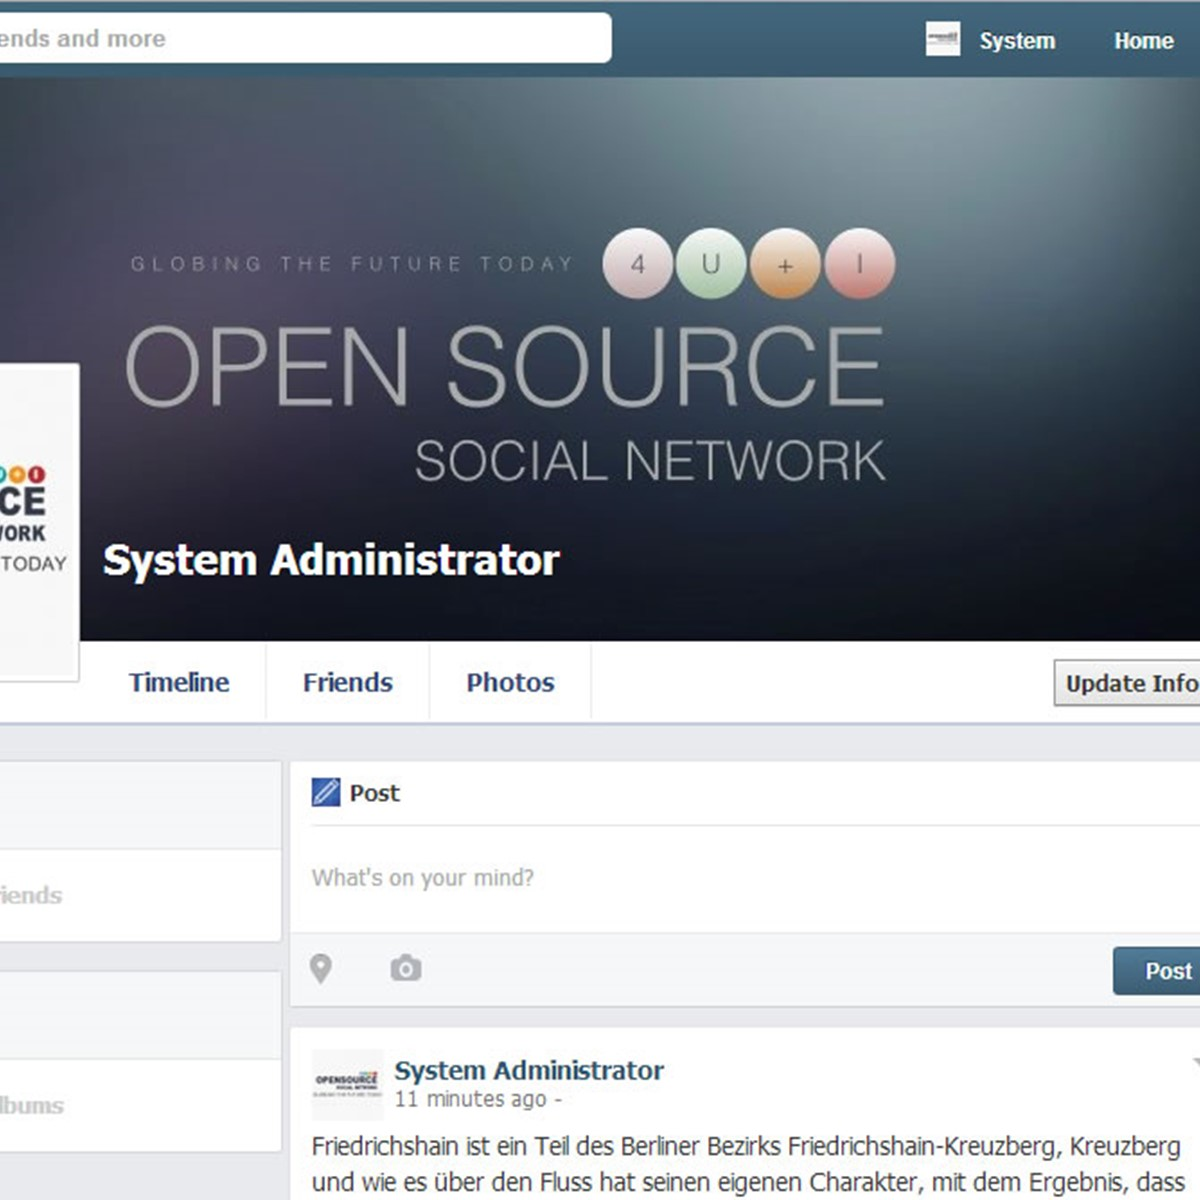 Open Source Social Network ( OSSN ) Alternatives And